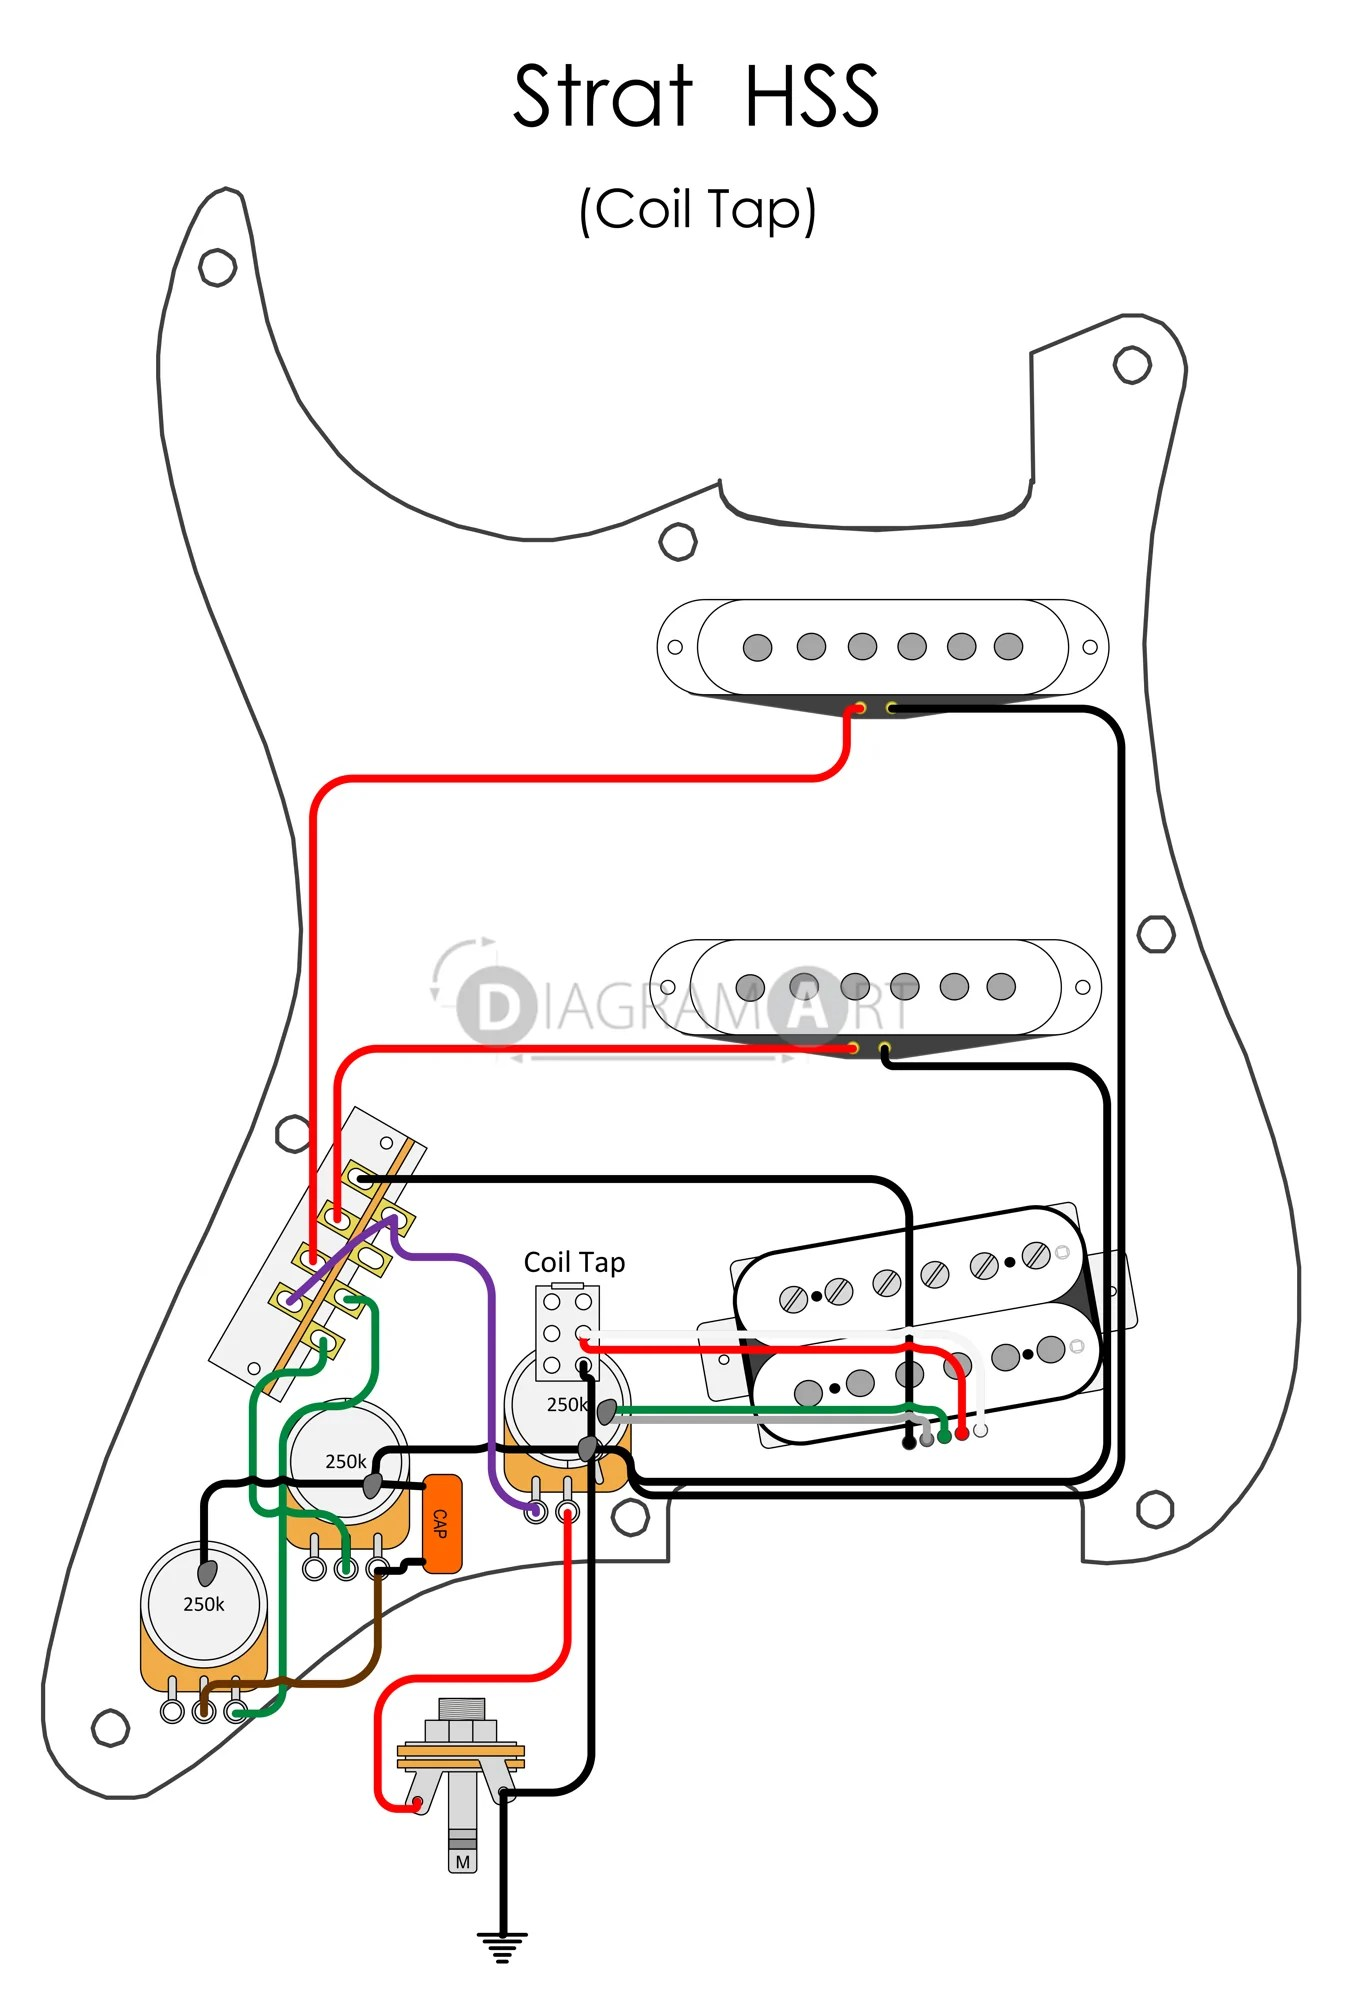 hss with coil split wiring diagram wiring diagram schematics split coil pickup coil split hss wiring diagram [ 1348 x 2000 Pixel ]